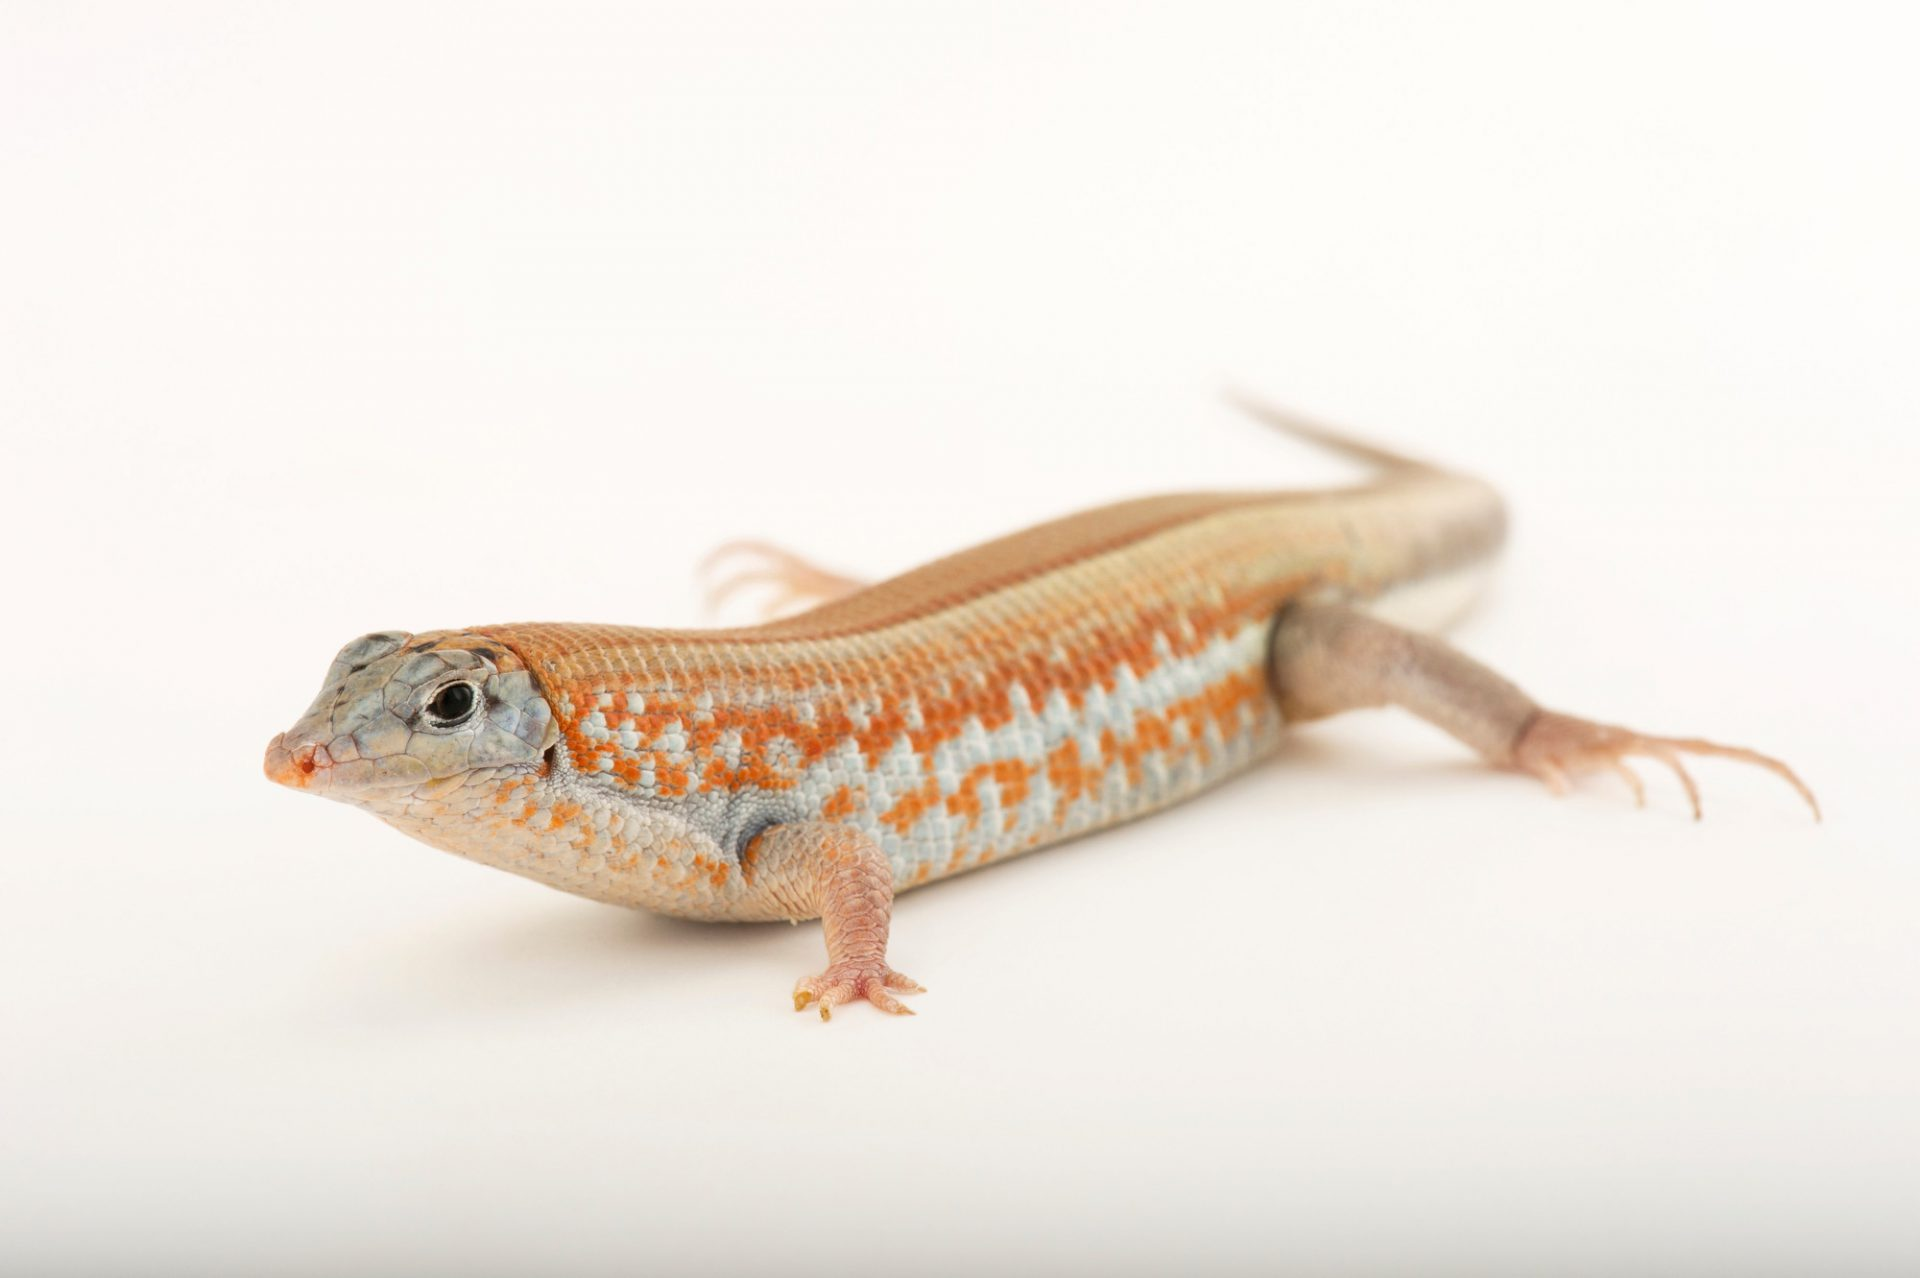 Photo: A Peter's keeled plated lizard (Tracheloptychus petersi) named Miles, from a private collection.